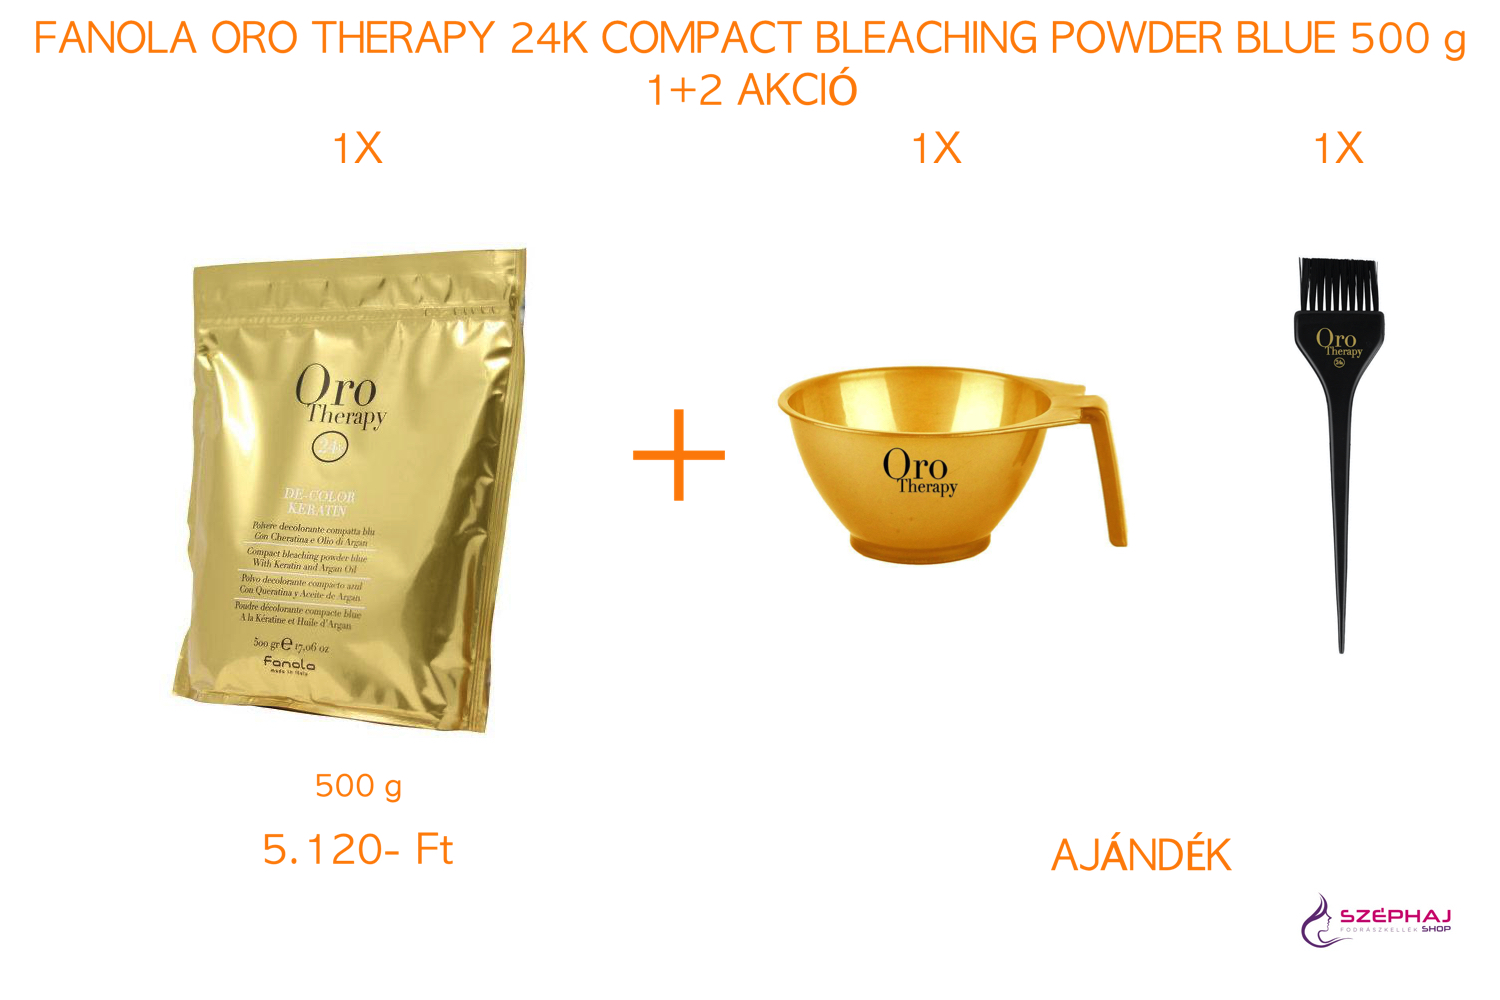 FANOLA ORO Therapy 24K Compact Bleaching Powder Blue 500 g 1+2 AKCIÓ